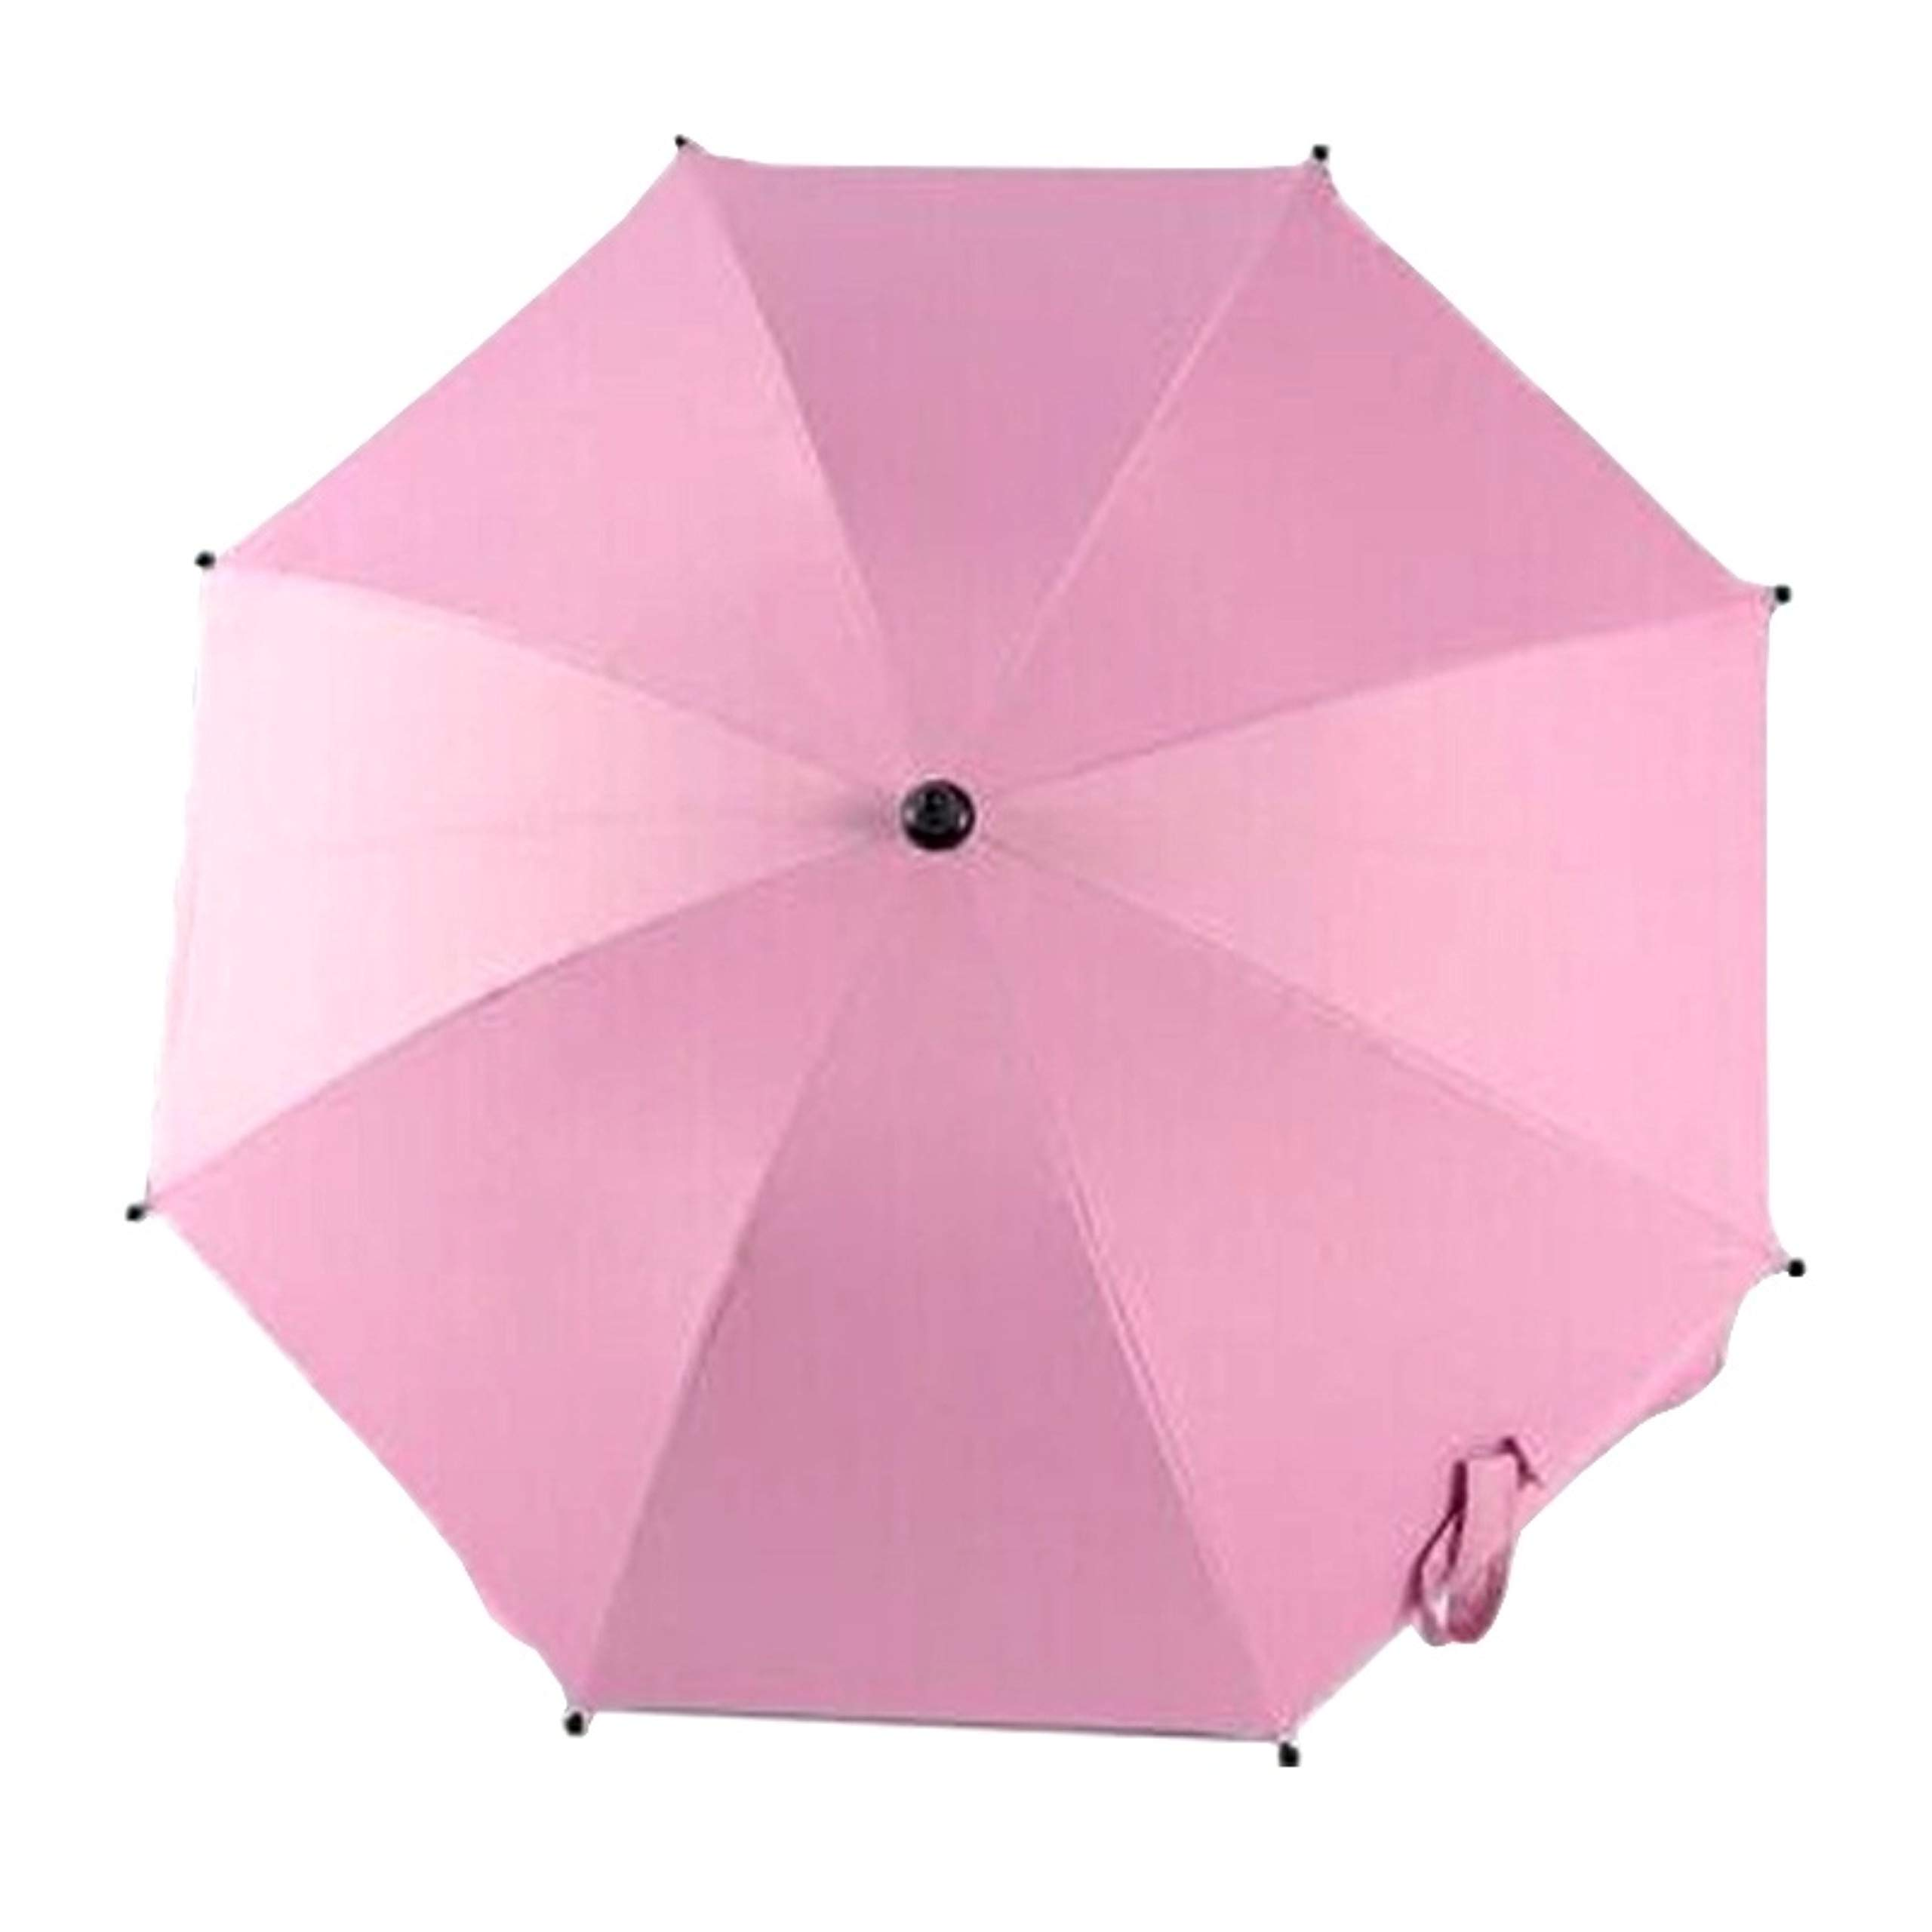 Adjustable Umbrella for Golf Carts, Baby Strollers/Prams and Wheelchairs to Provide Protection from Rain and The Sun(Pink)